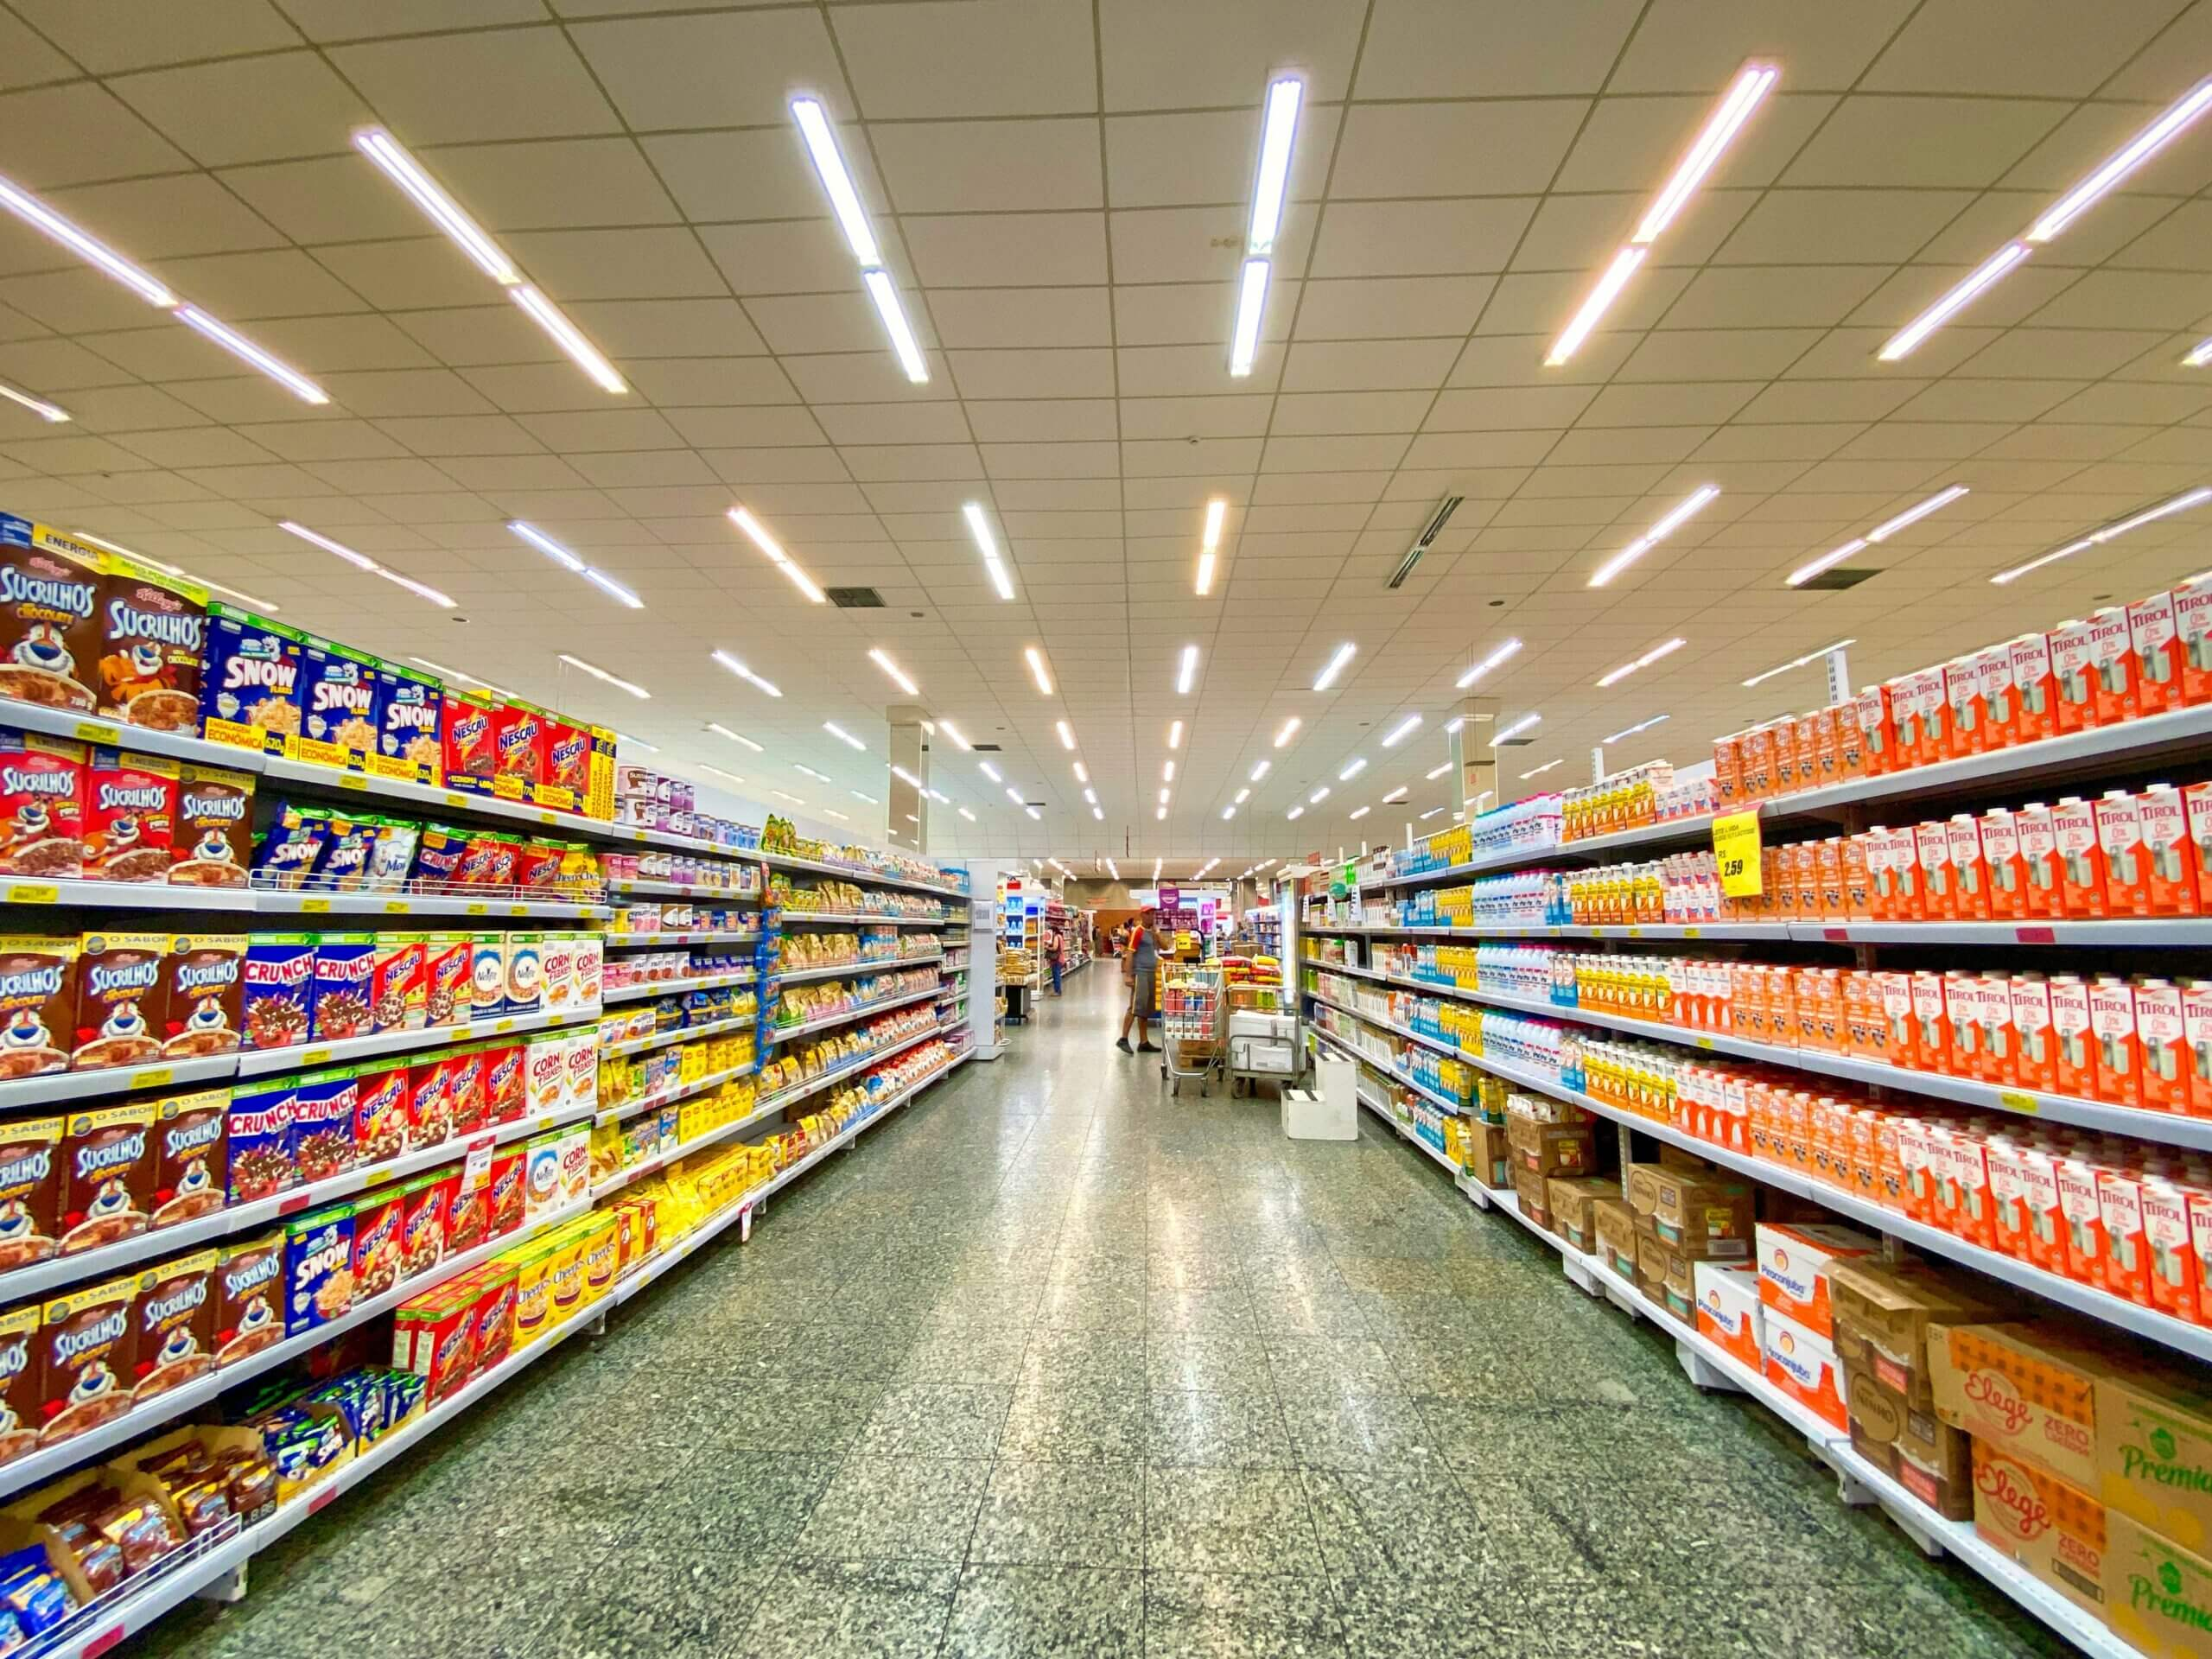 AI retail shelf monitoring solutions provide retailers an opportunity to make smarter decisions about sales, marketing, staffing, security and many more.